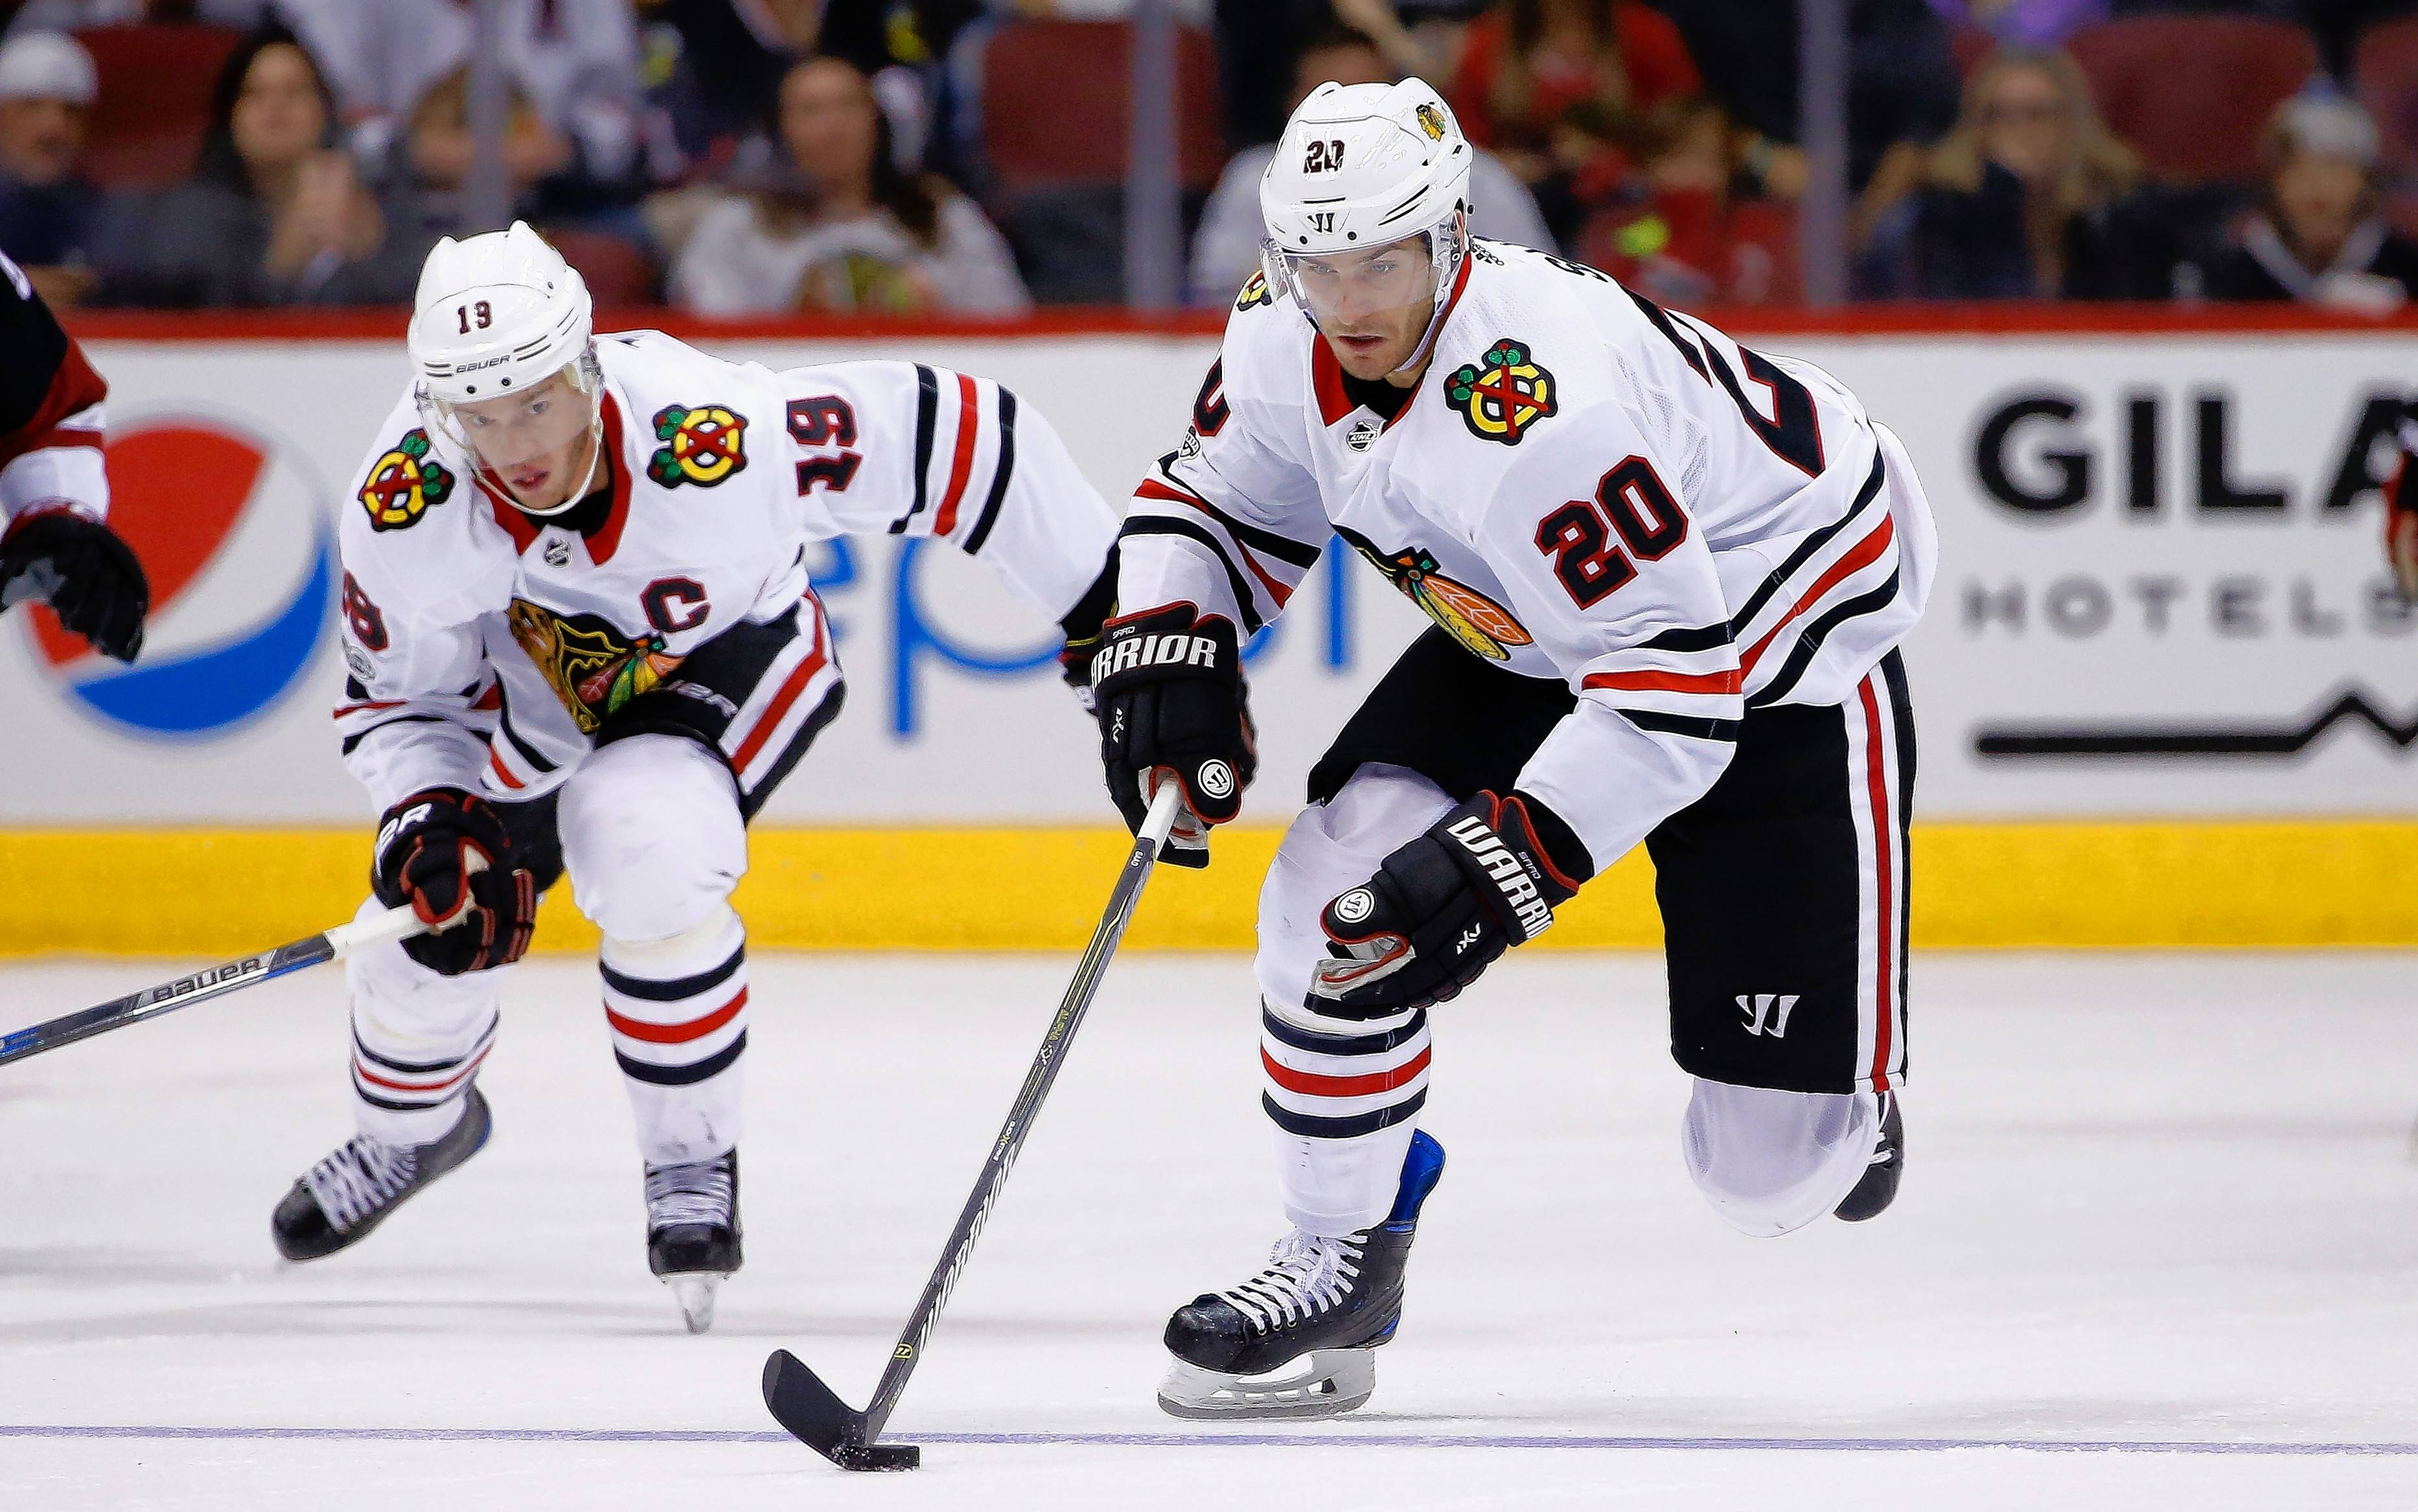 The Blackhawks' Brandon Saad skates with Jonathan Toews against Arizona in a game last year.